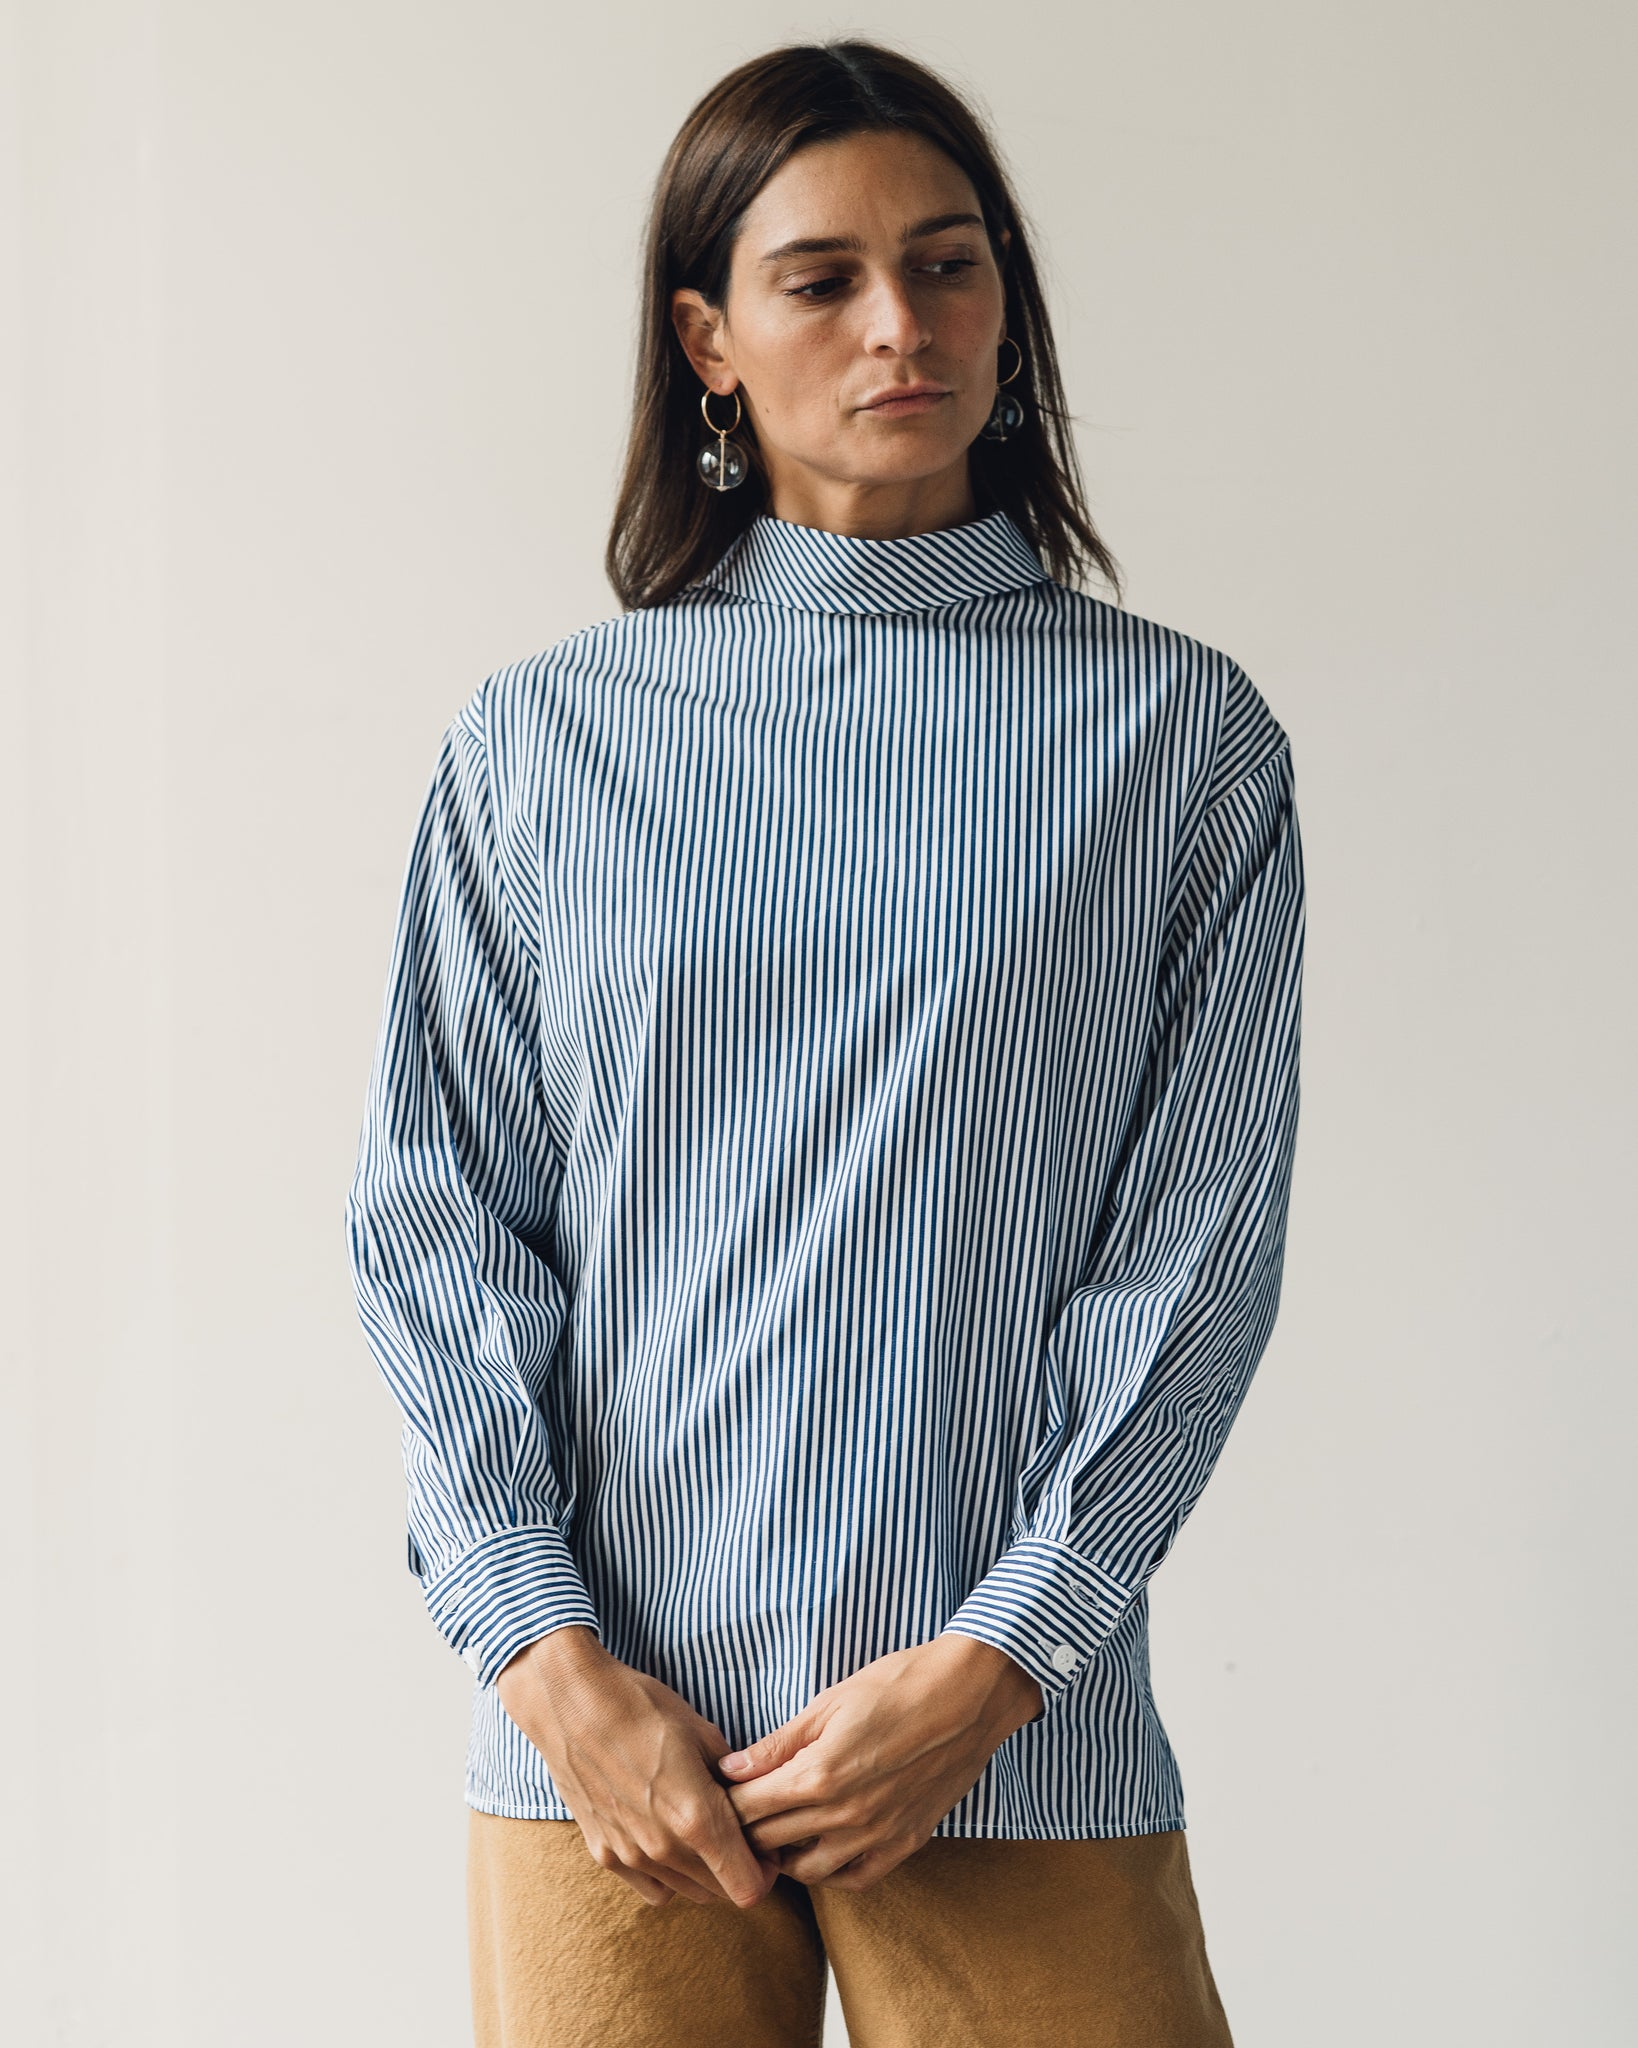 Jesse Kamm Box Turtleneck, Thin Stripe